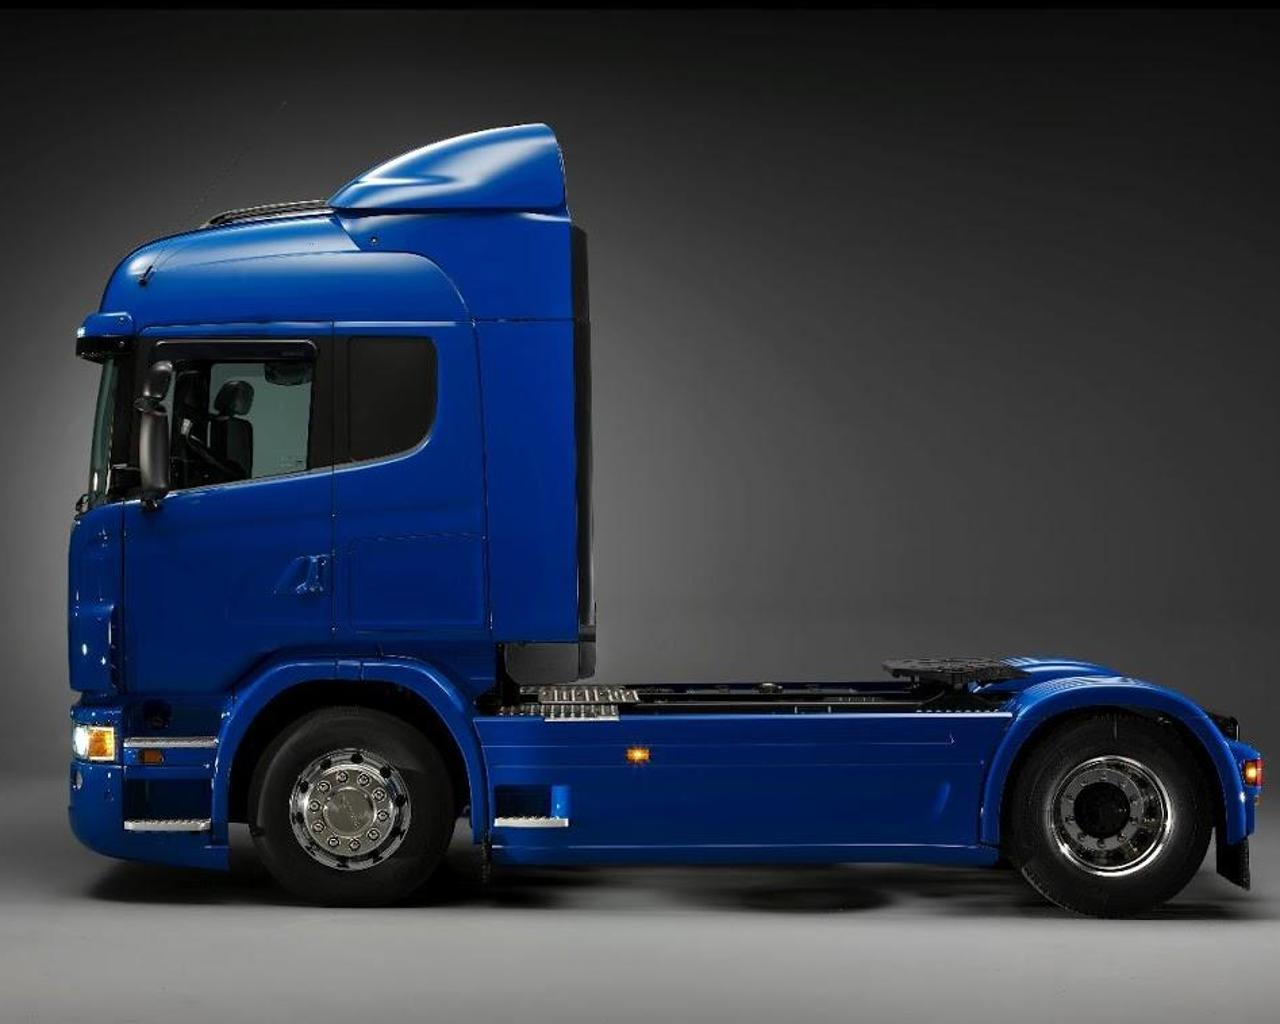 Wallpapers Scania Trucks For Android Apk Download